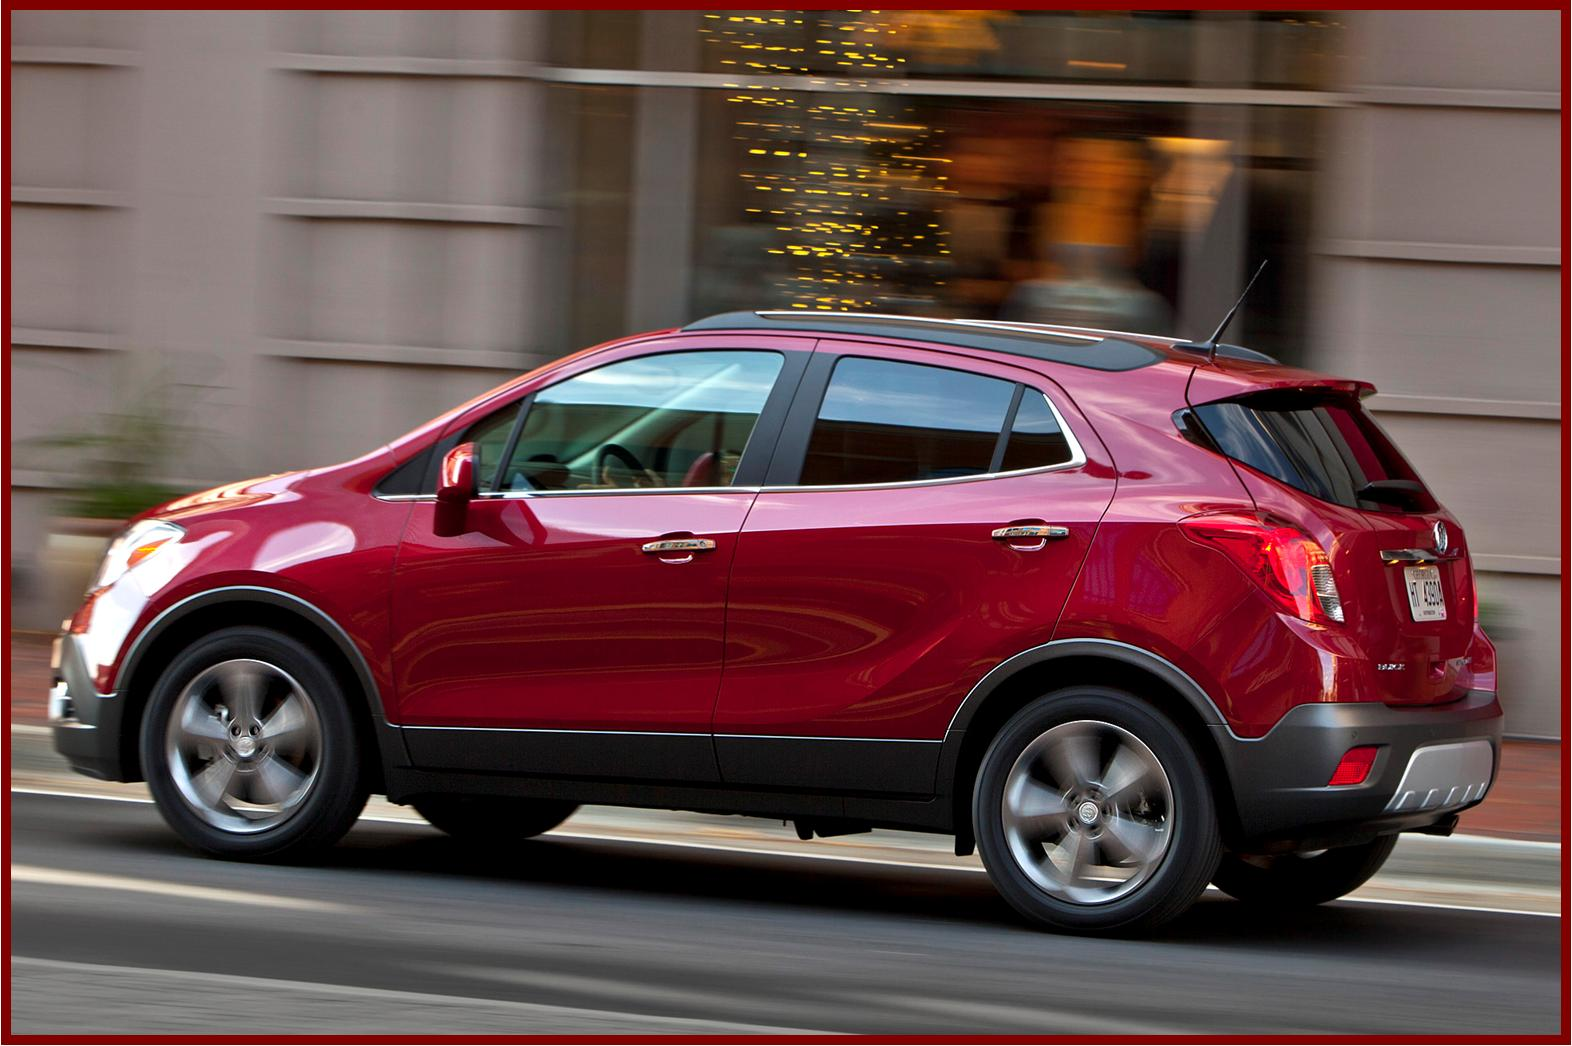 2013 buick encore the compact suv for fans of cute and. Black Bedroom Furniture Sets. Home Design Ideas